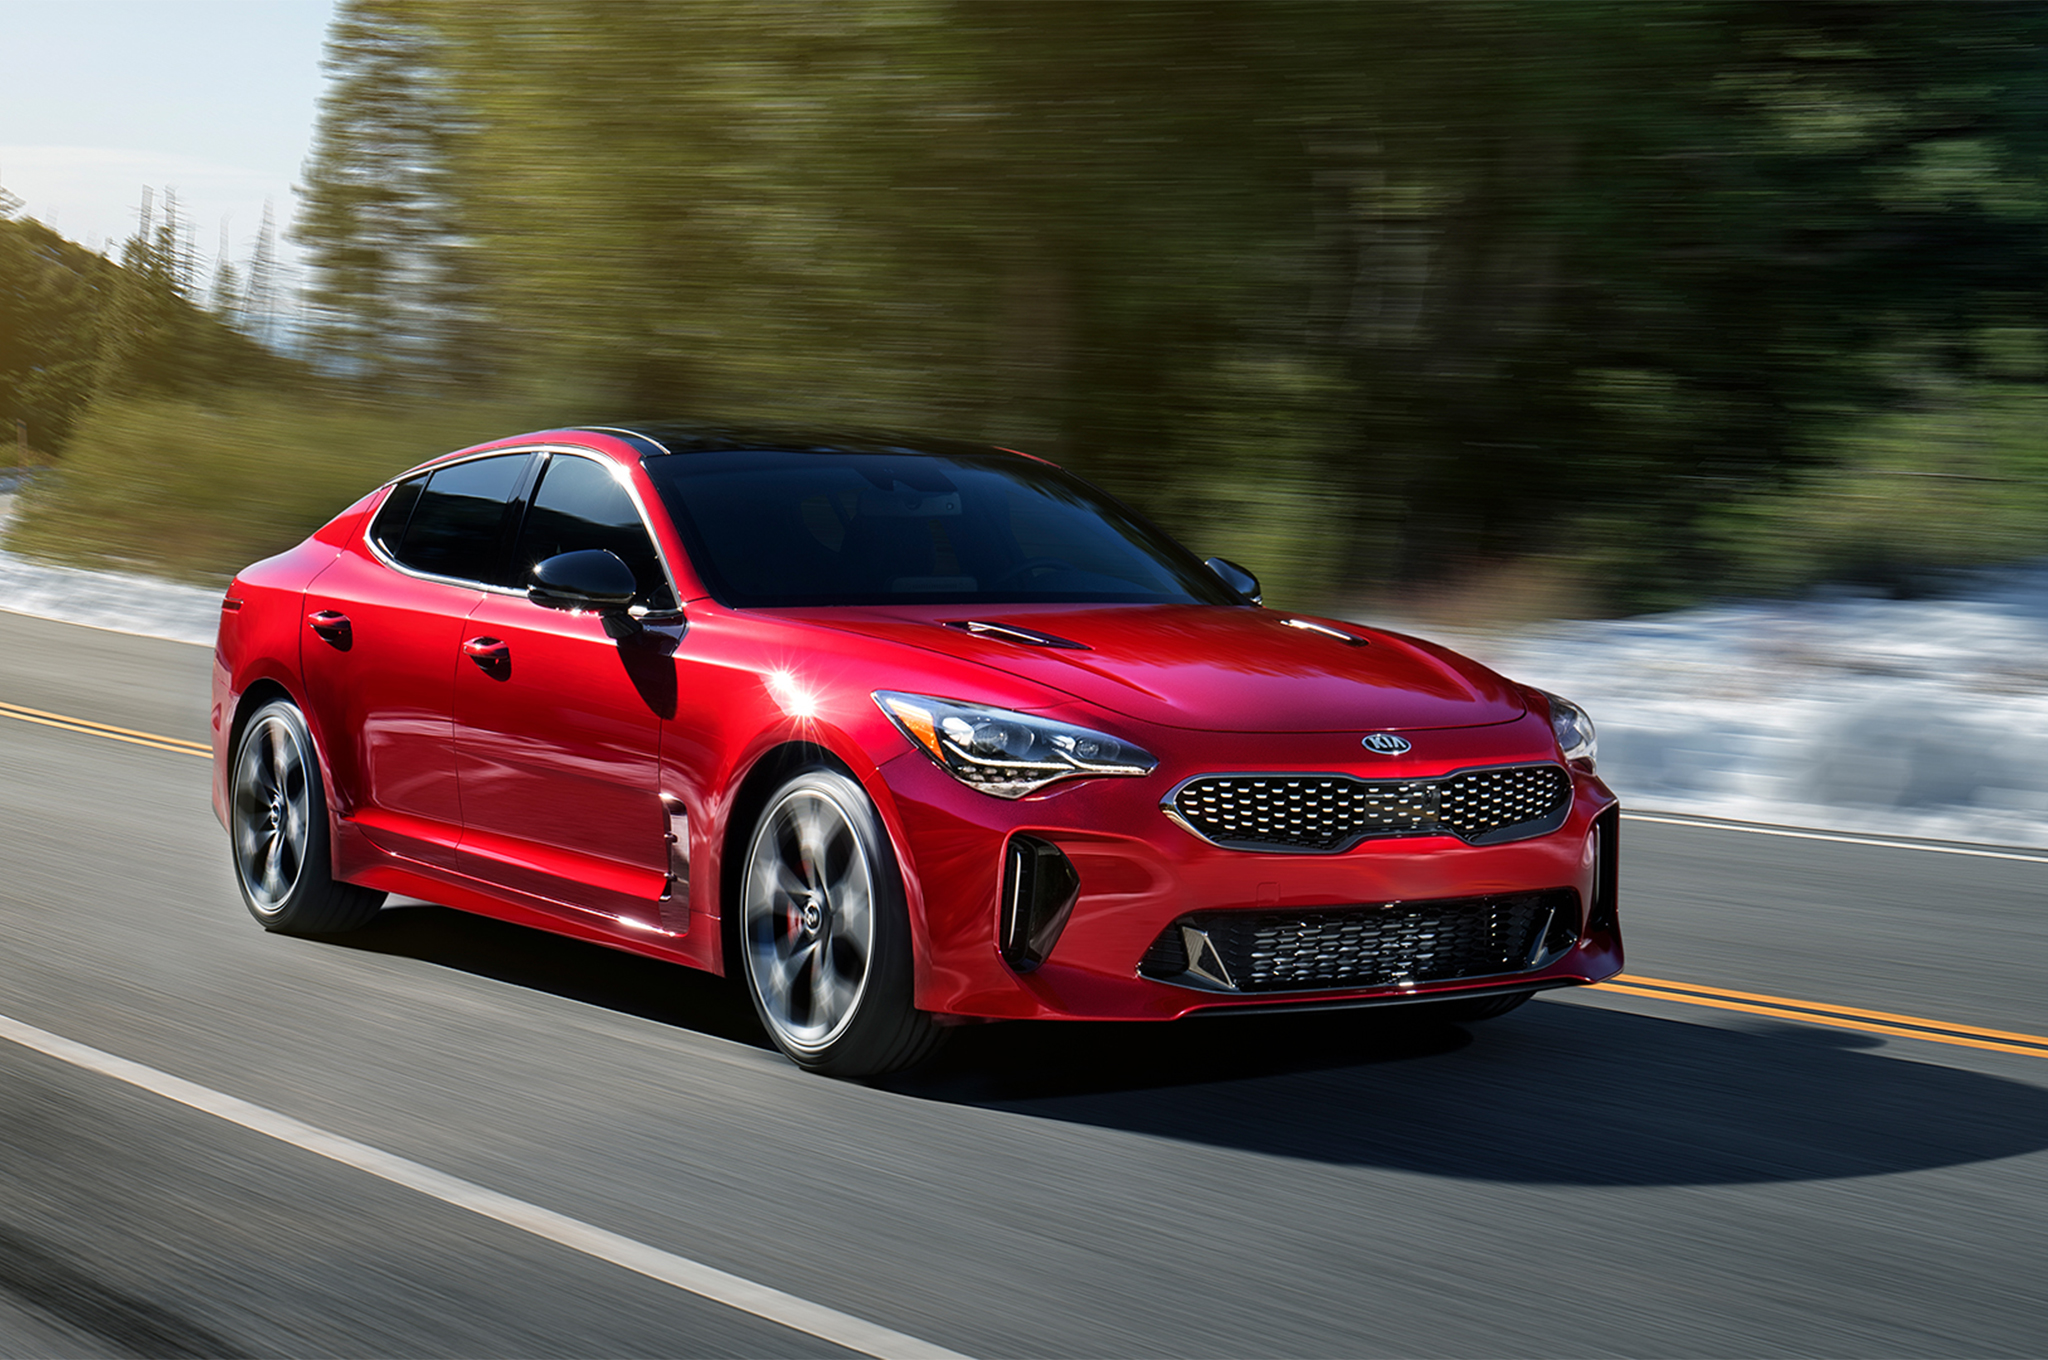 2018-Kia-Stinger-GT-front-three-quarter-in-motion-04.jpg